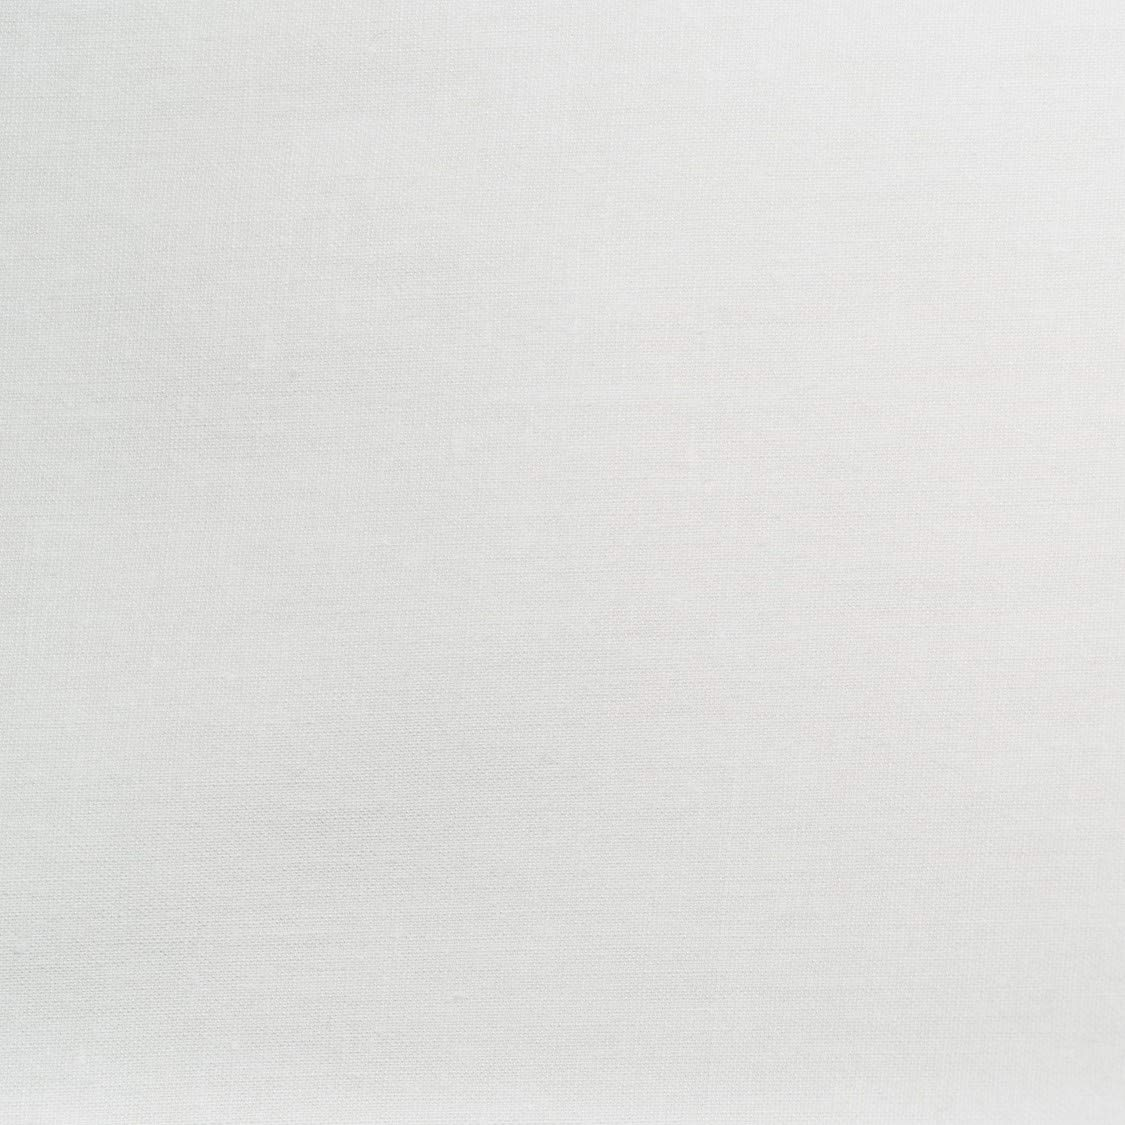 Roc-lon No.5115 118 to 120-Inch Wide Permanent Press Muslin, 15-Yard, Bleached by Roc-lon (Image #2)